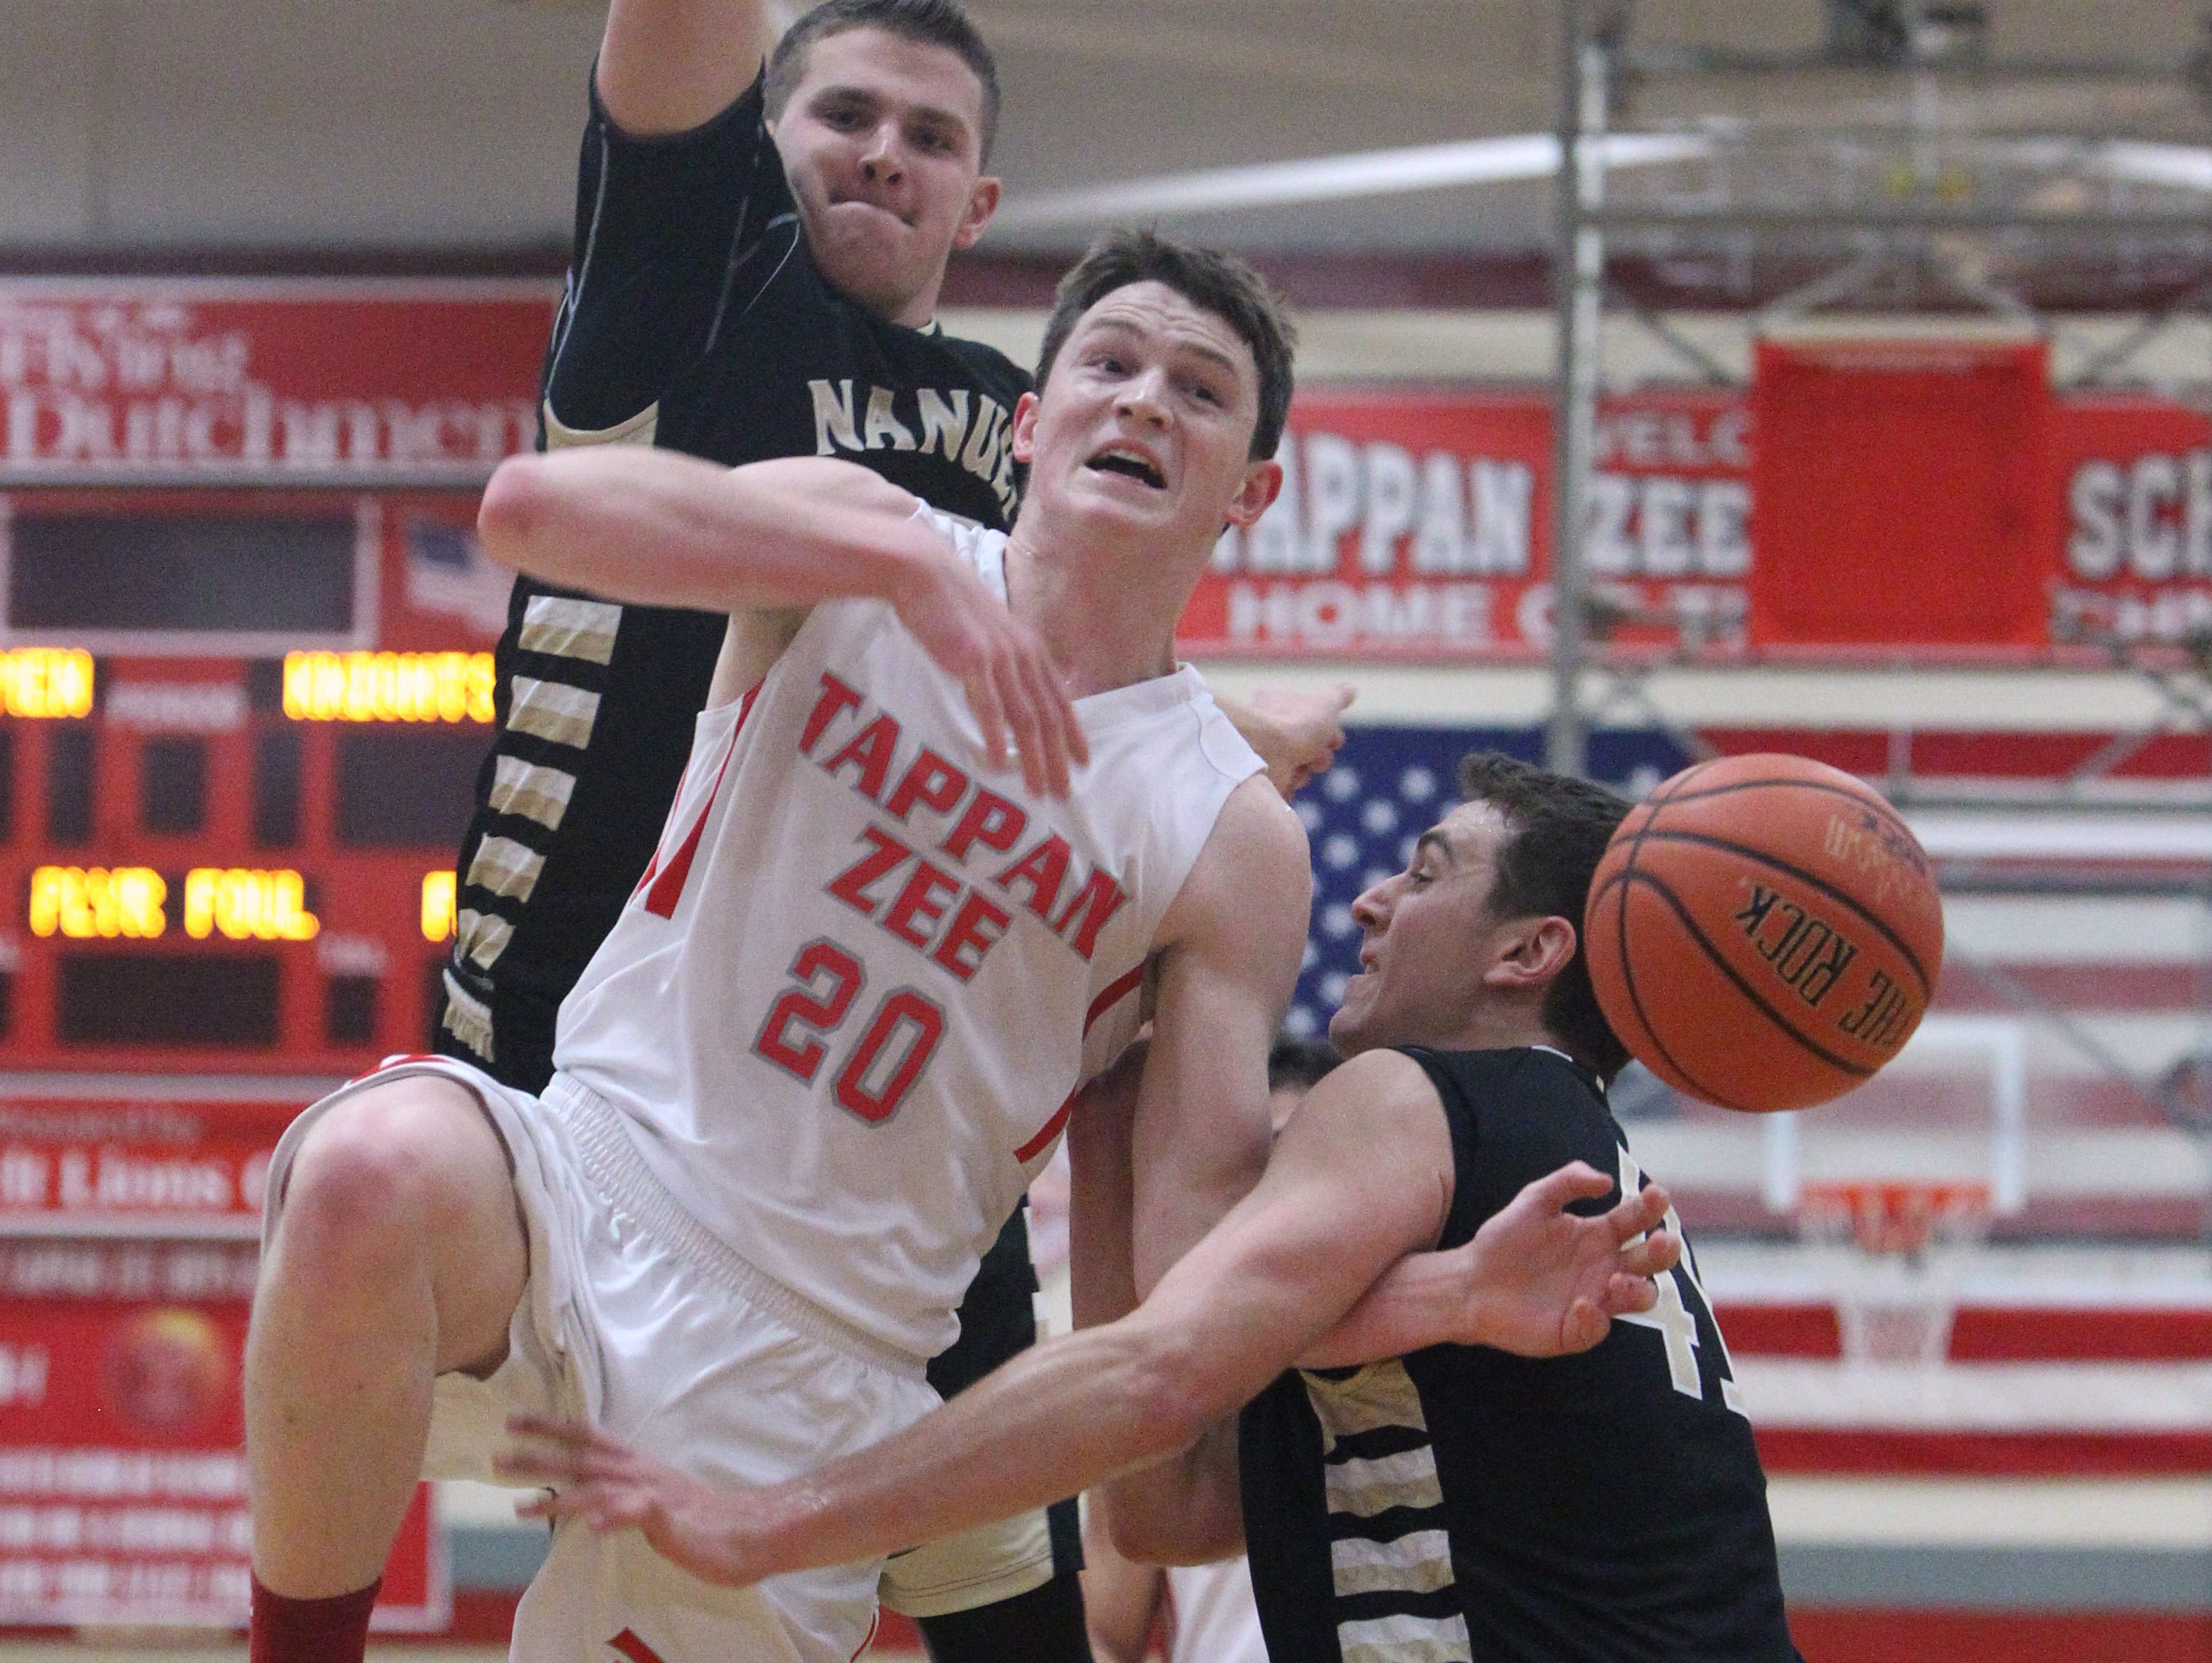 Tappan Zee's Kevin Lynch is fouled while driving on Nanuet's Jordan Landsman, left, and Aedan Lombardo (41) during their game at Tappan Zee Jan. 6, 2016. Tappan Zee won 59-46.